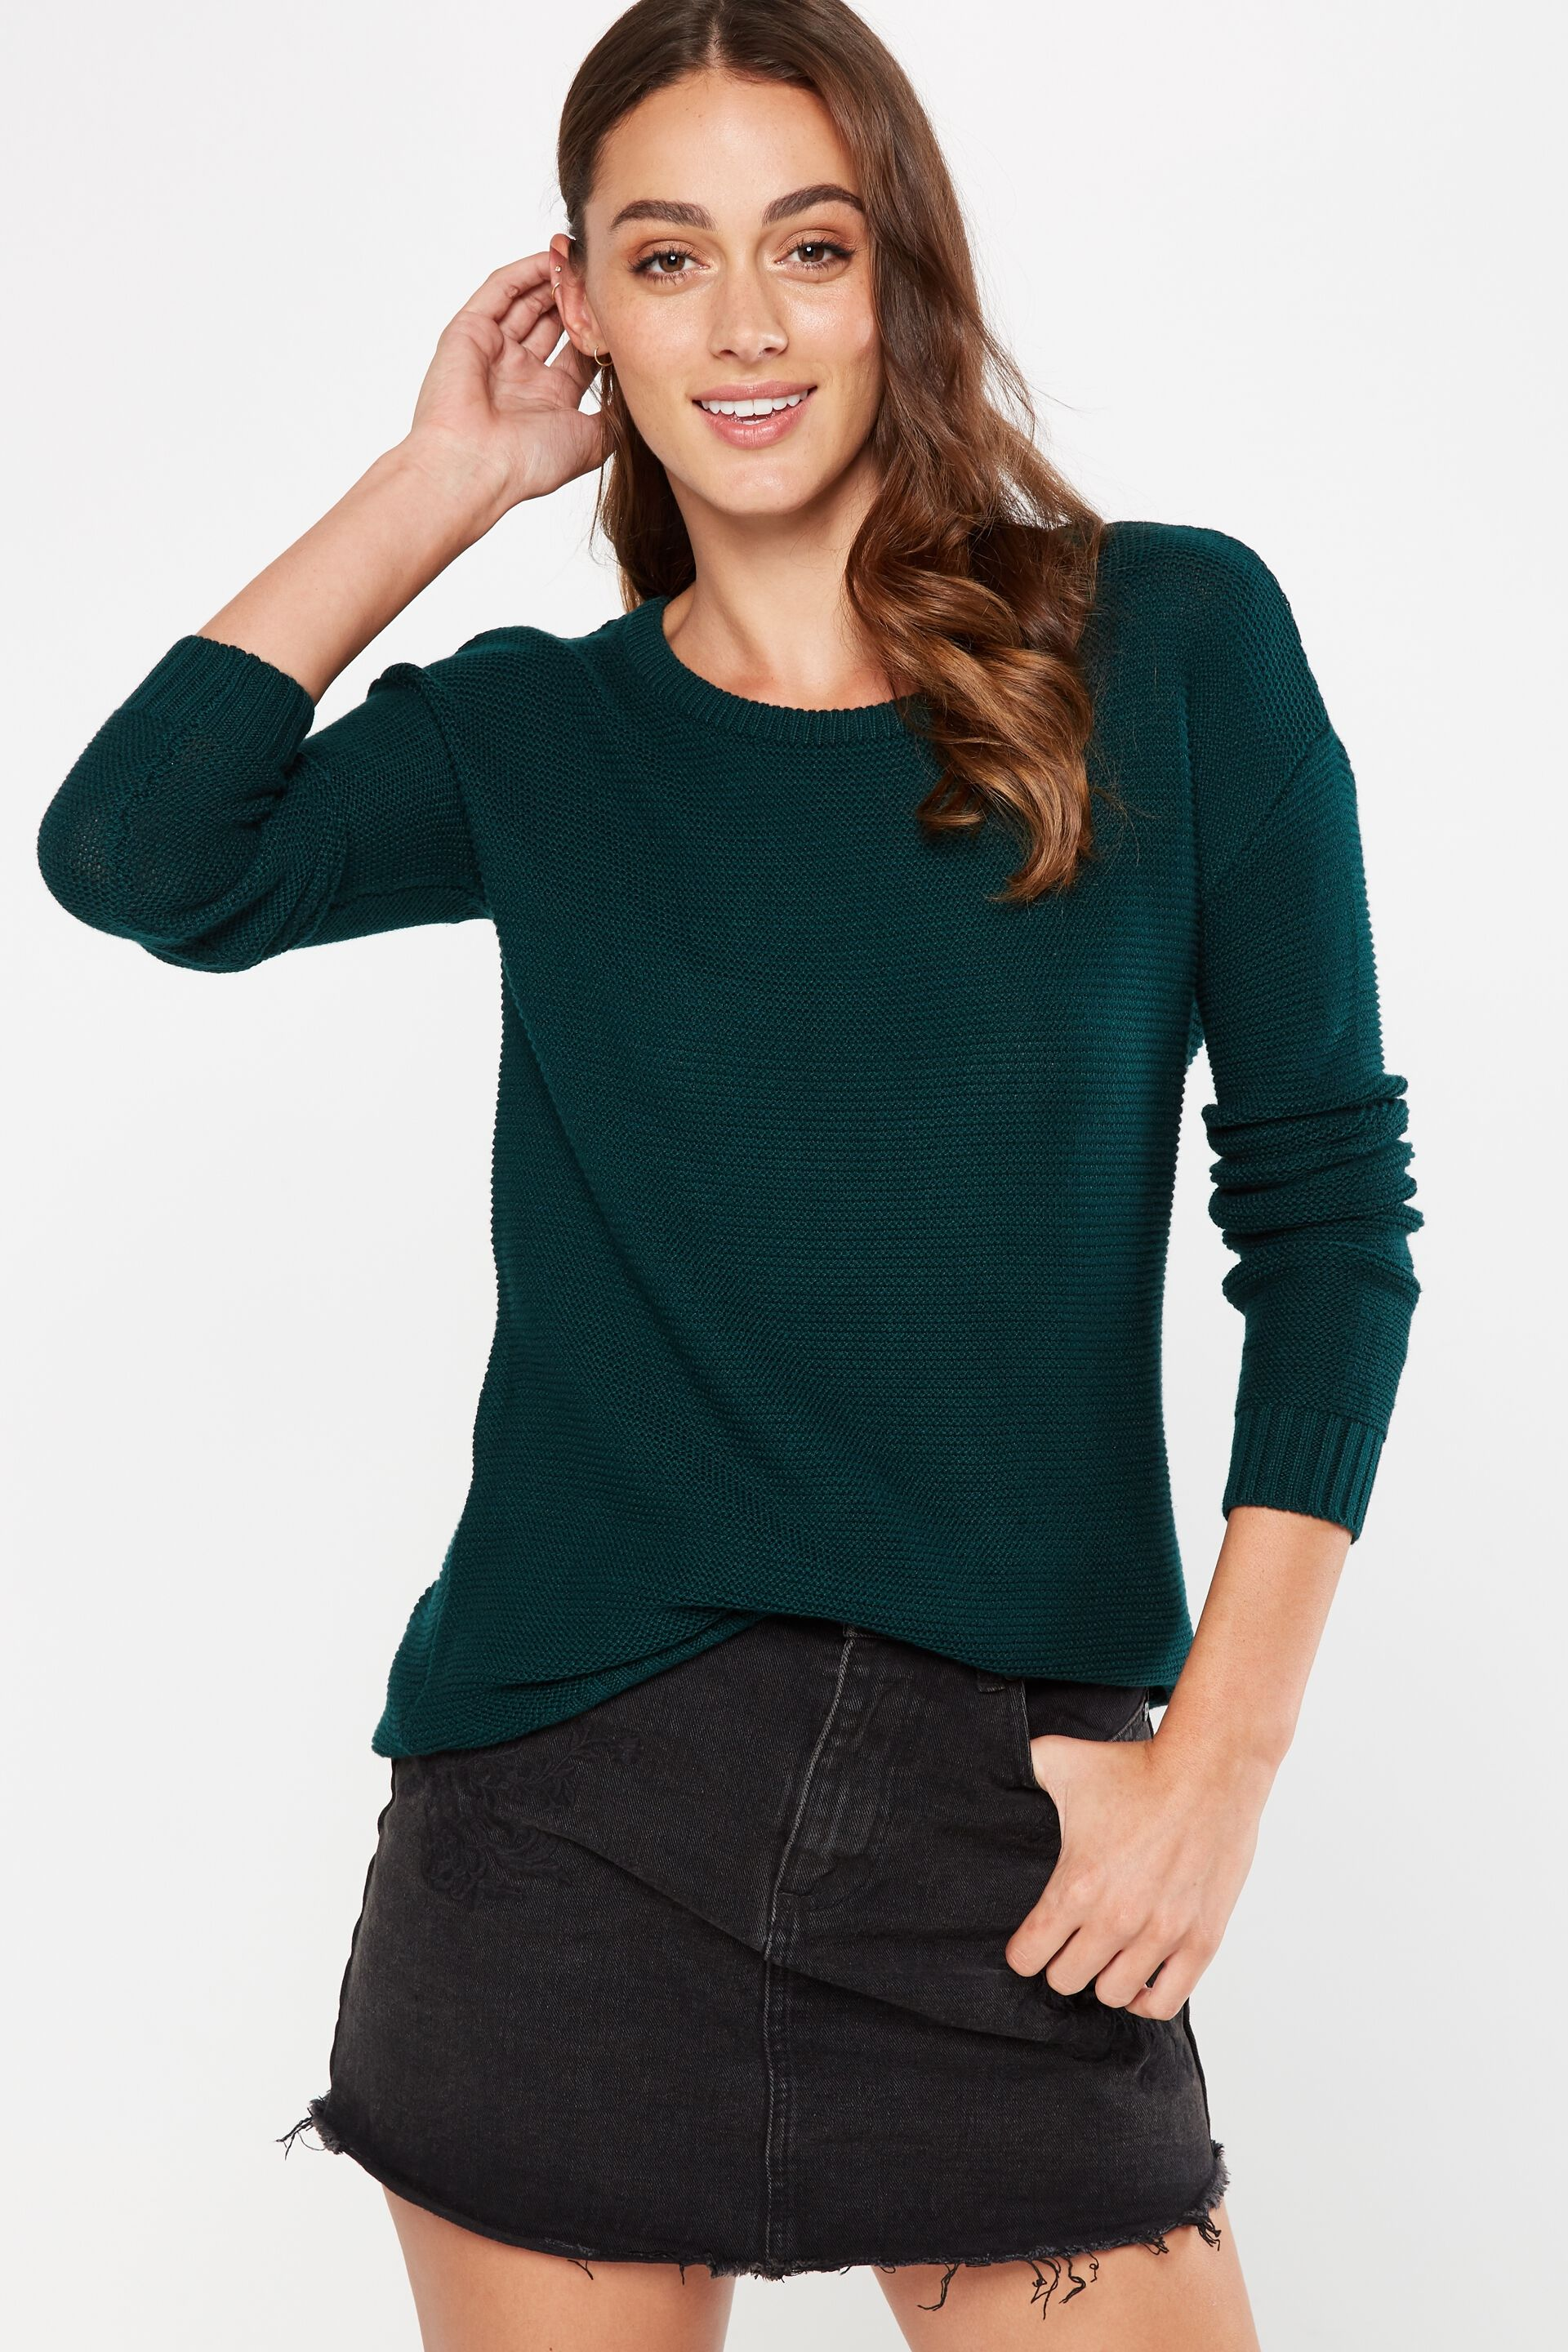 Archy 4 Pullover, VELVETY GREEN. Cotton On Women. Archy 4 Pullover